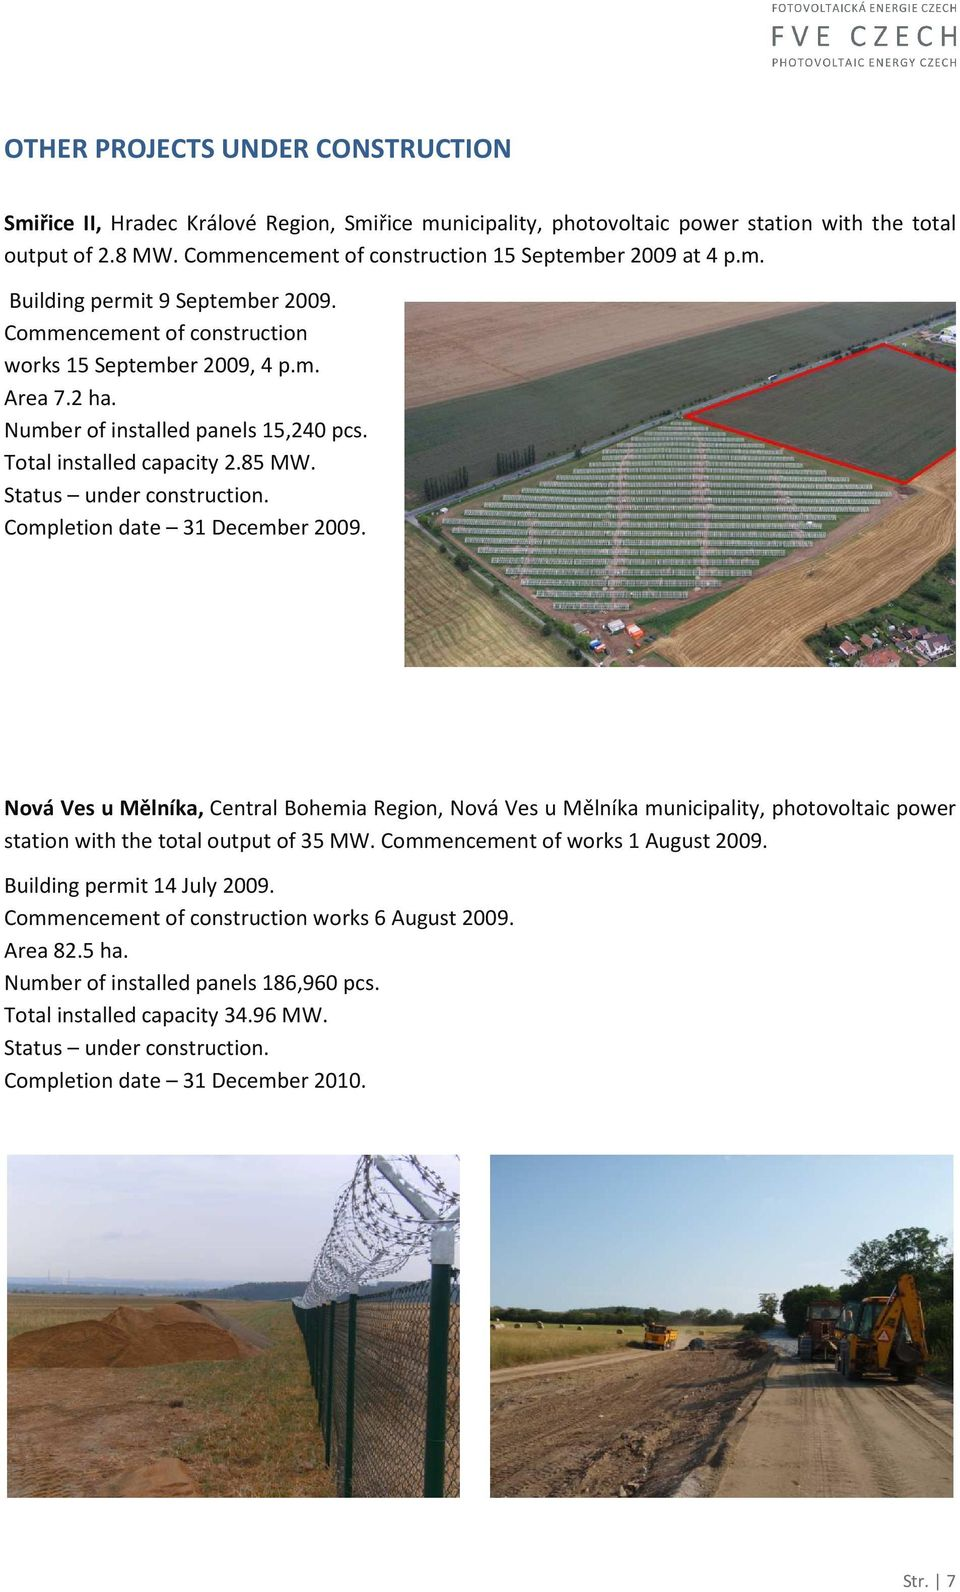 Number of installed panels 15,240 pcs. Total installed capacity 2.85 MW. Status under construction. Completion date 31 December 2009.